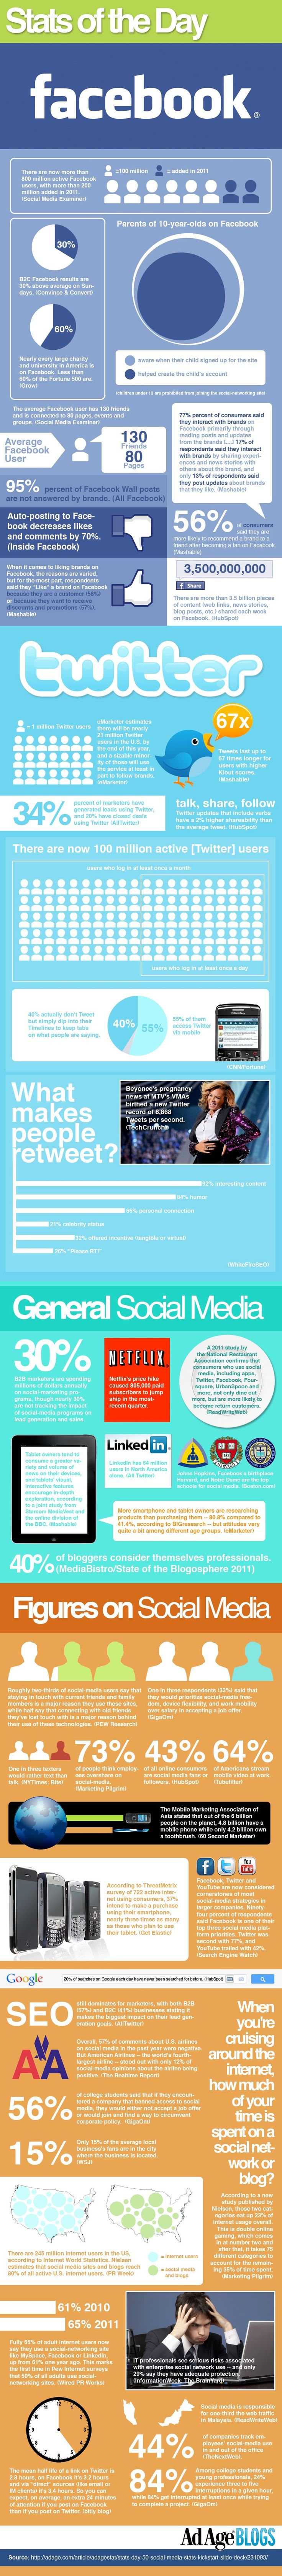 Infographic: Social Media Stats of Today